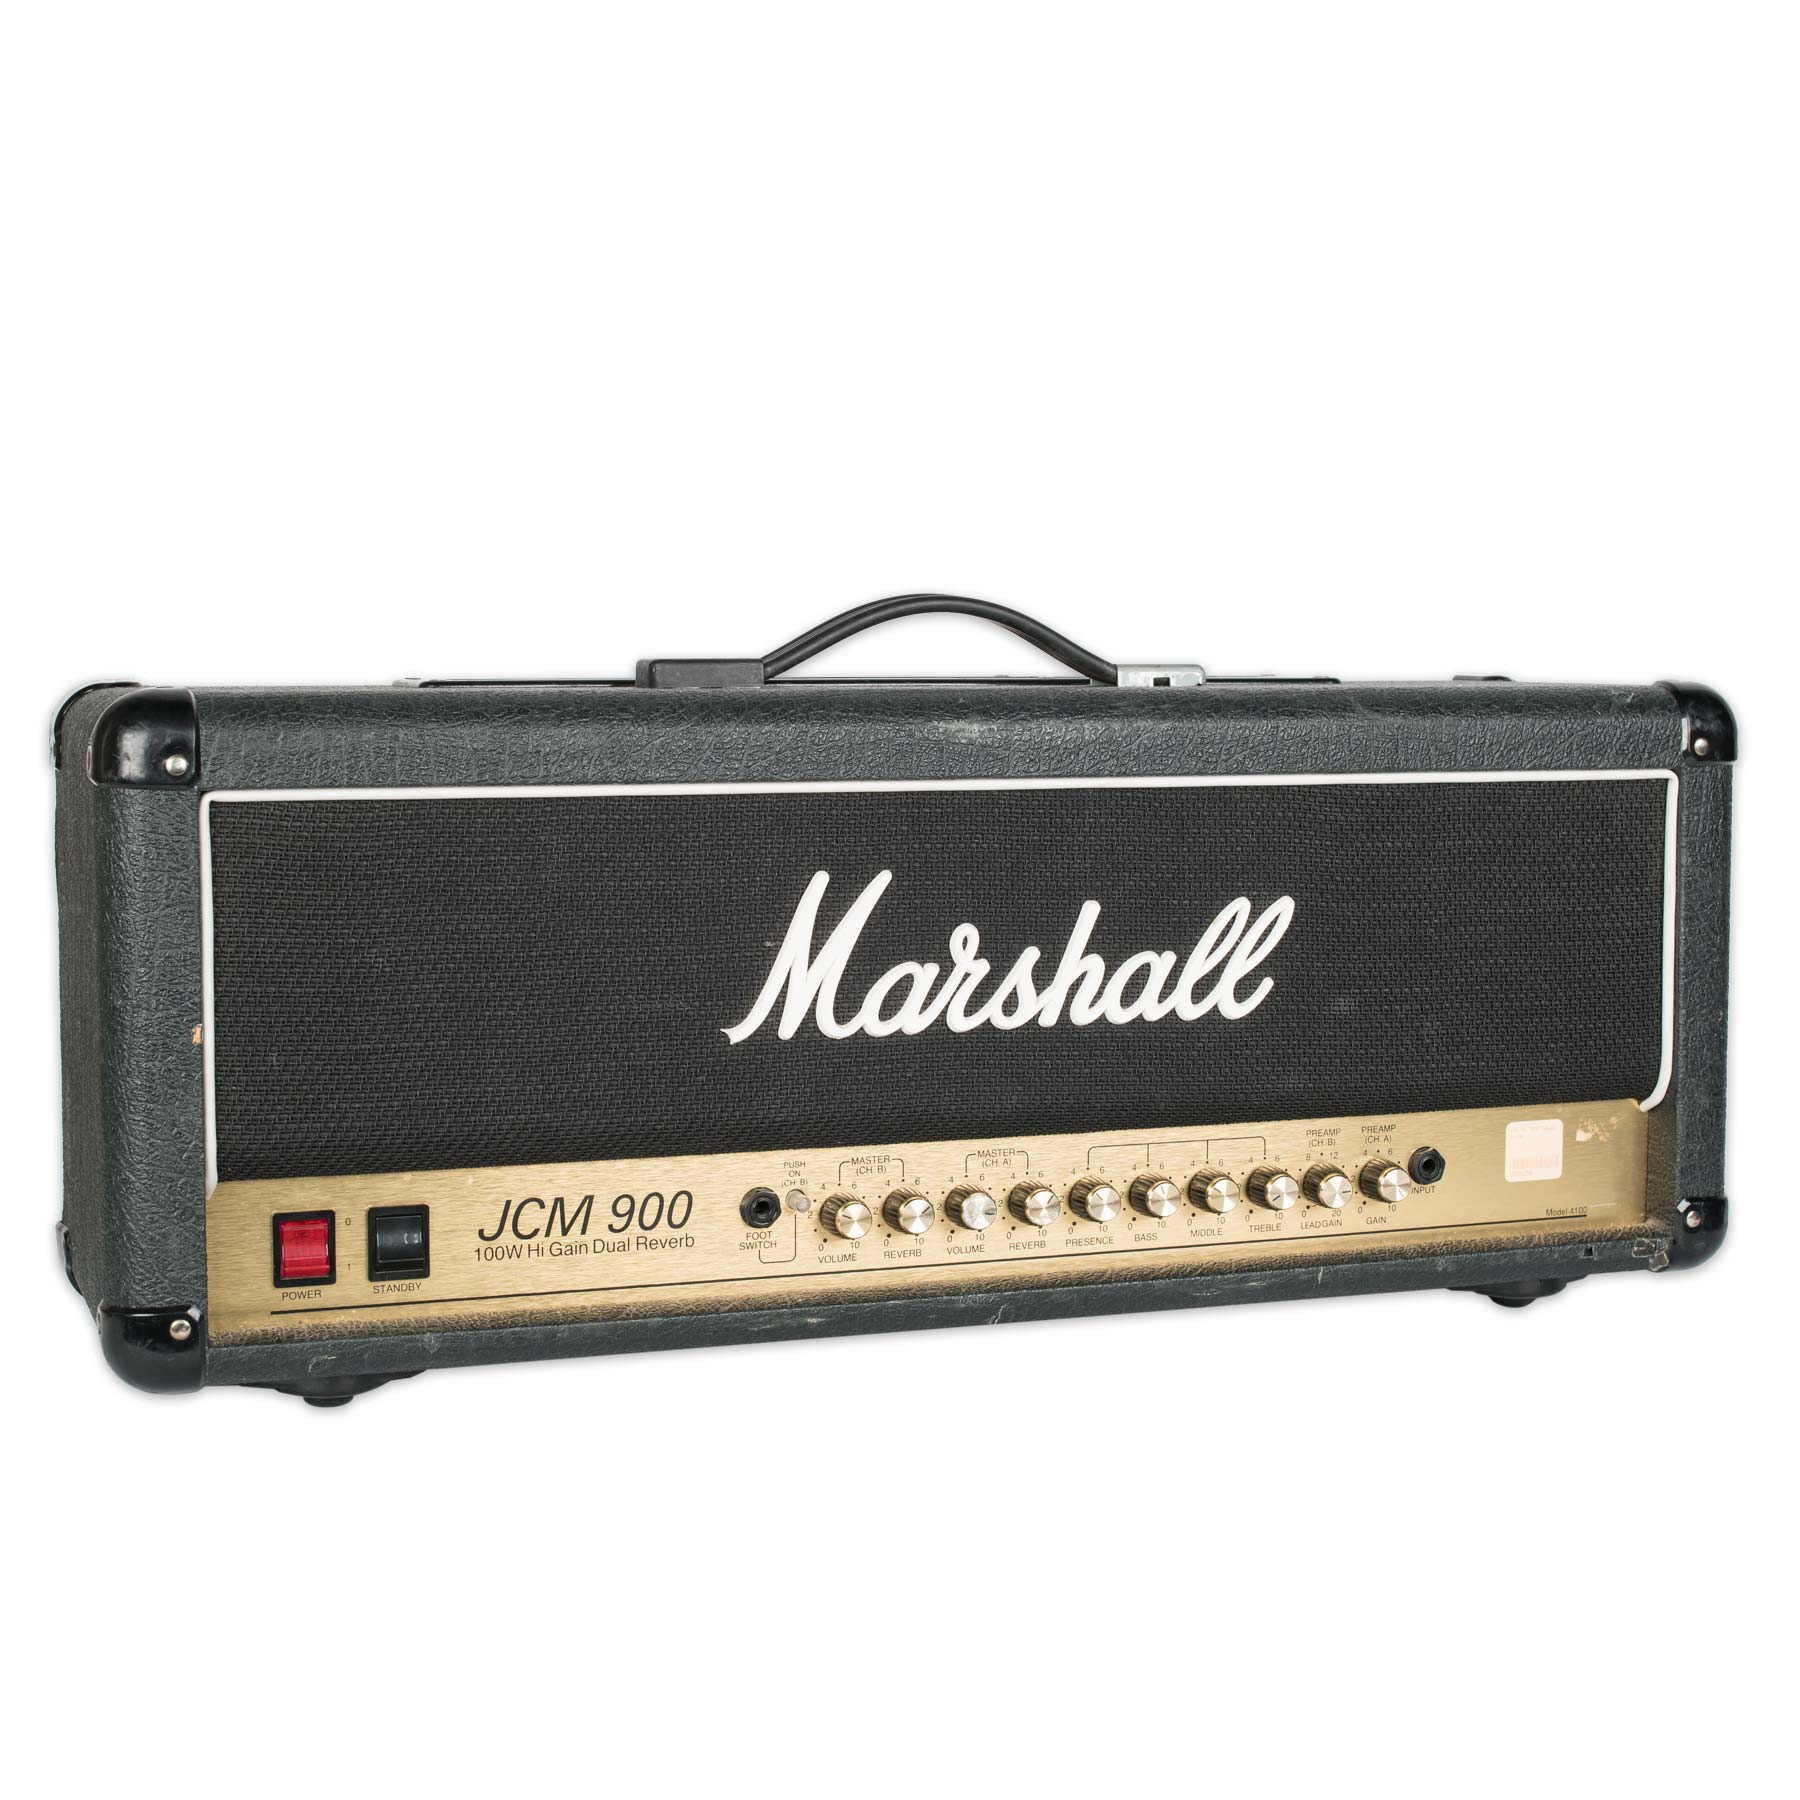 USED 2006 MARSHALL JCM 900 HEAD